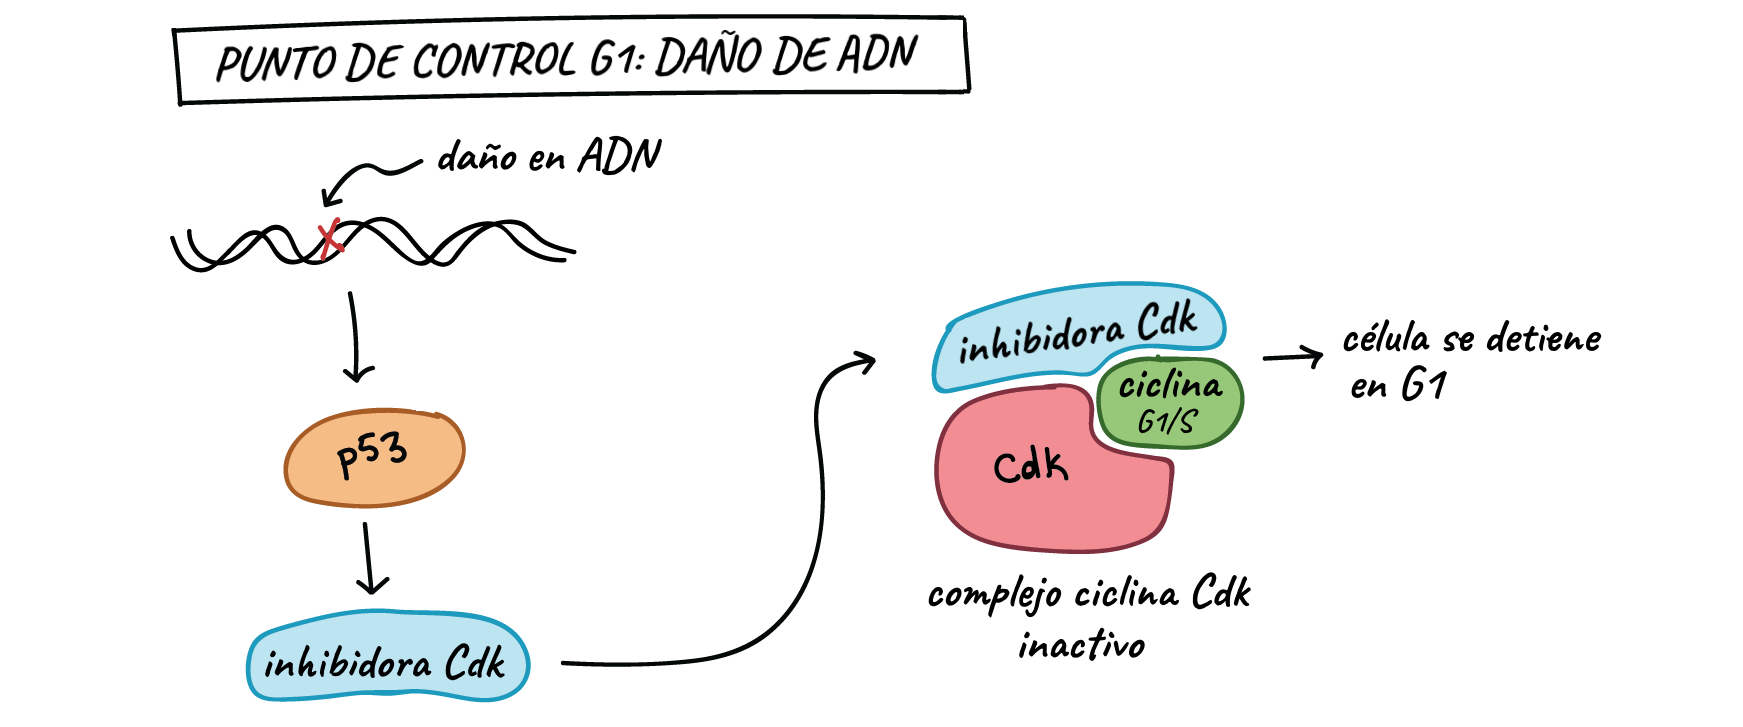 Cancer and the cell cycle | Biology (artículo) | Khan Academy